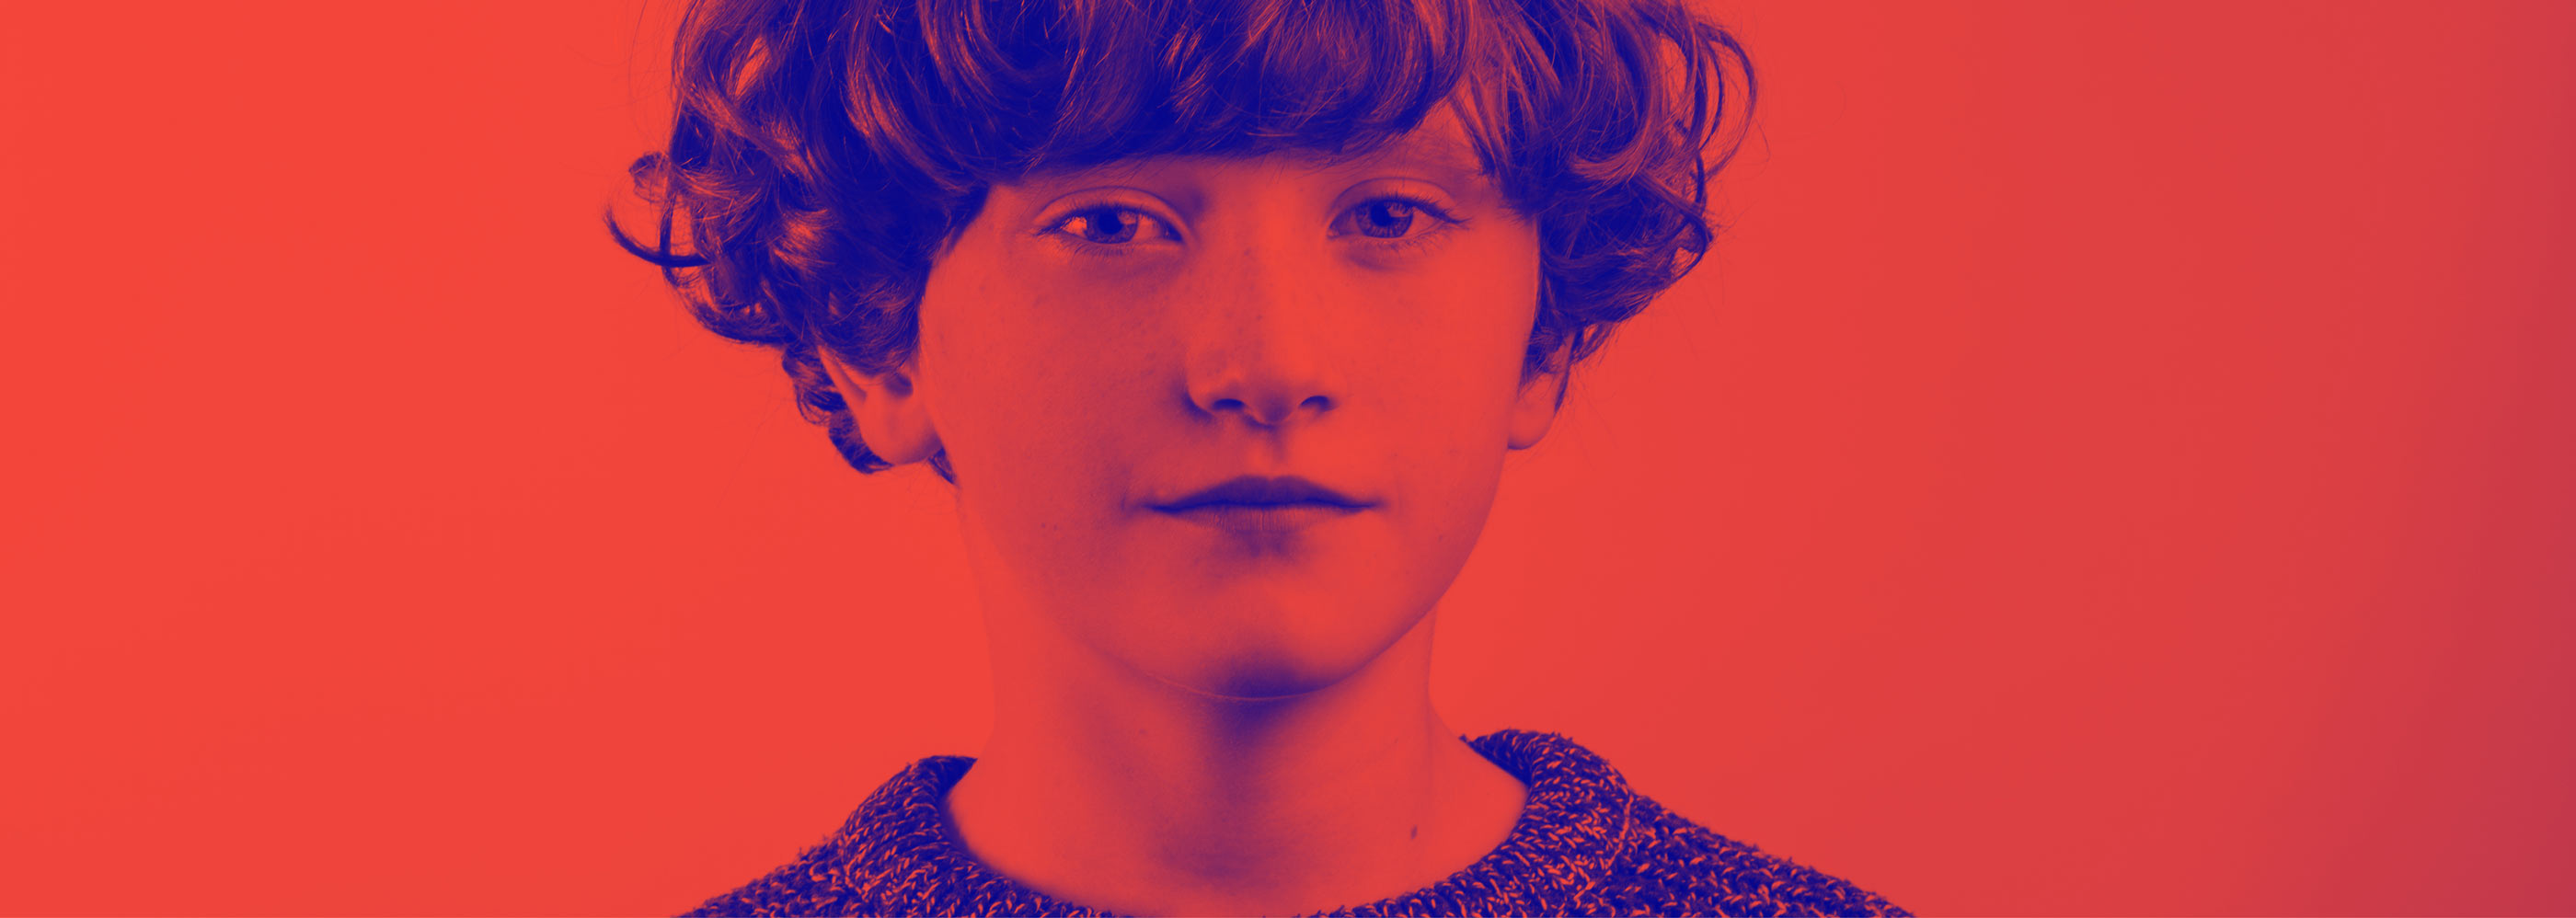 Immigrant Council of Ireland brand development featuring photo of young boy in red and blue